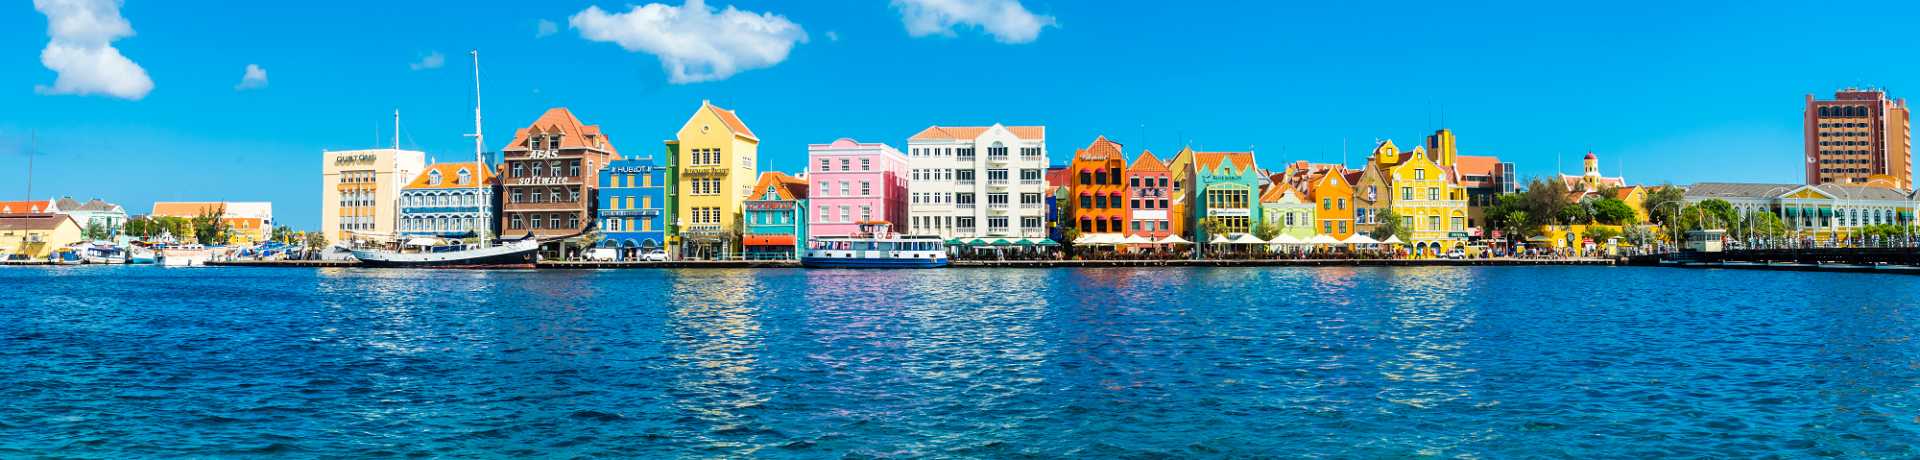 Karibik: Antillen Curacao Willemstad Emotion